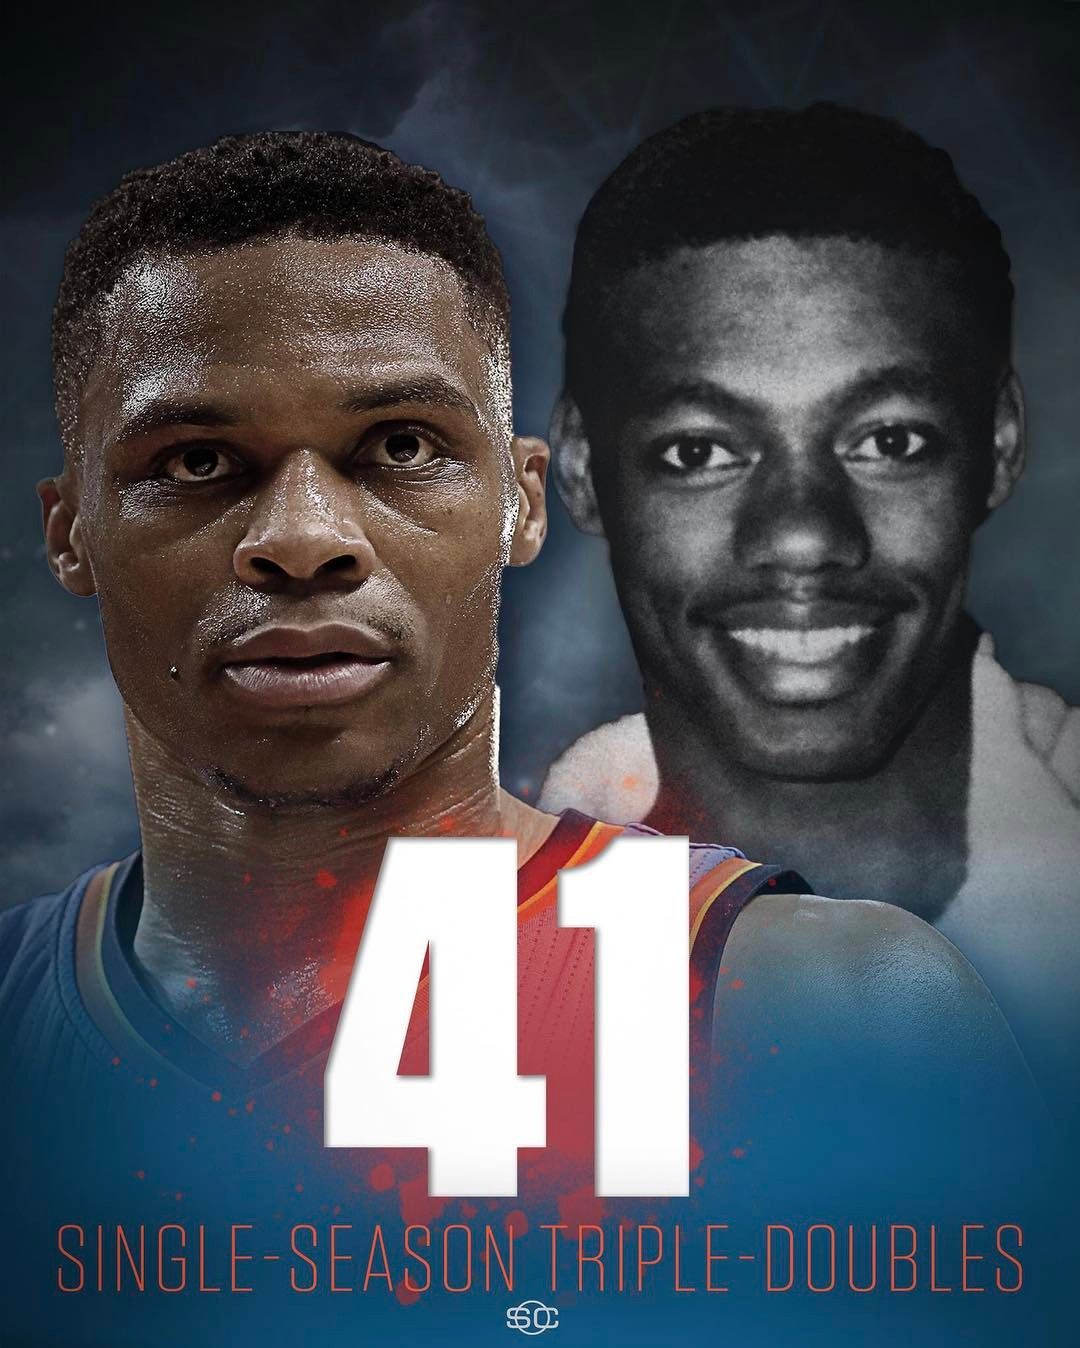 Russell Westbrook just tied Oscar Robertson for most single season